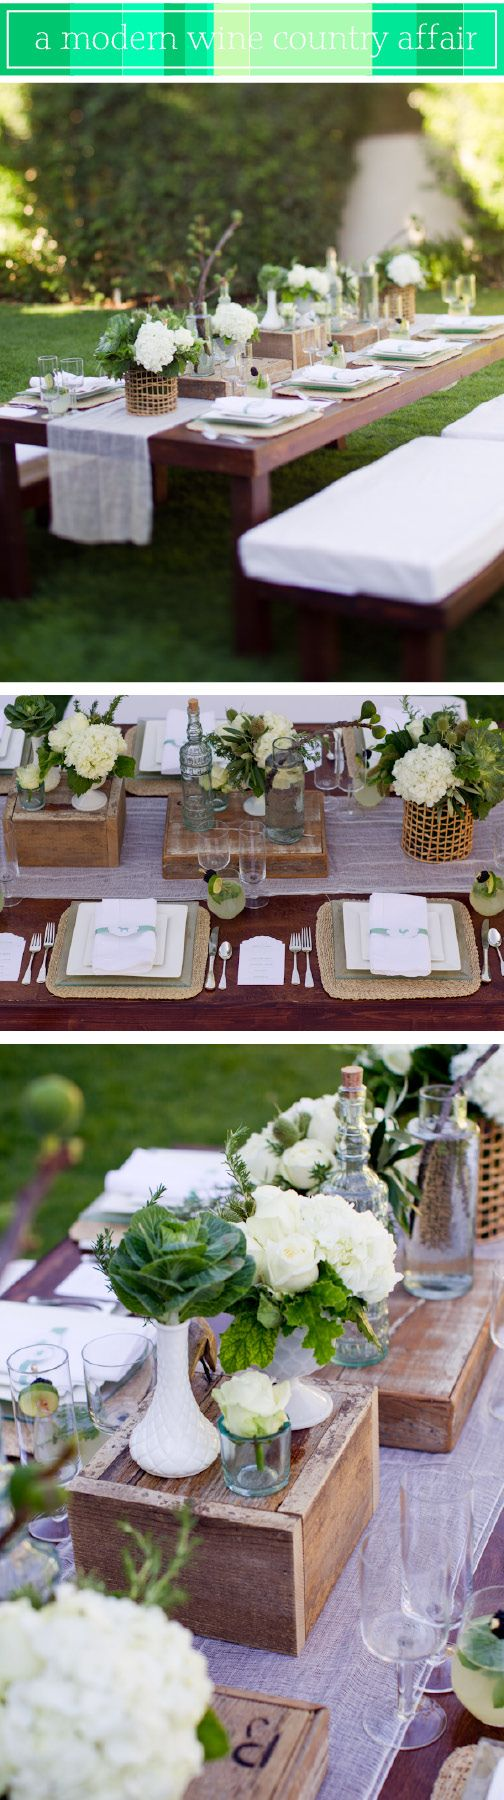 Canvas & Canopy   Events by Cortnie   The art of celebration from inspiration to creation